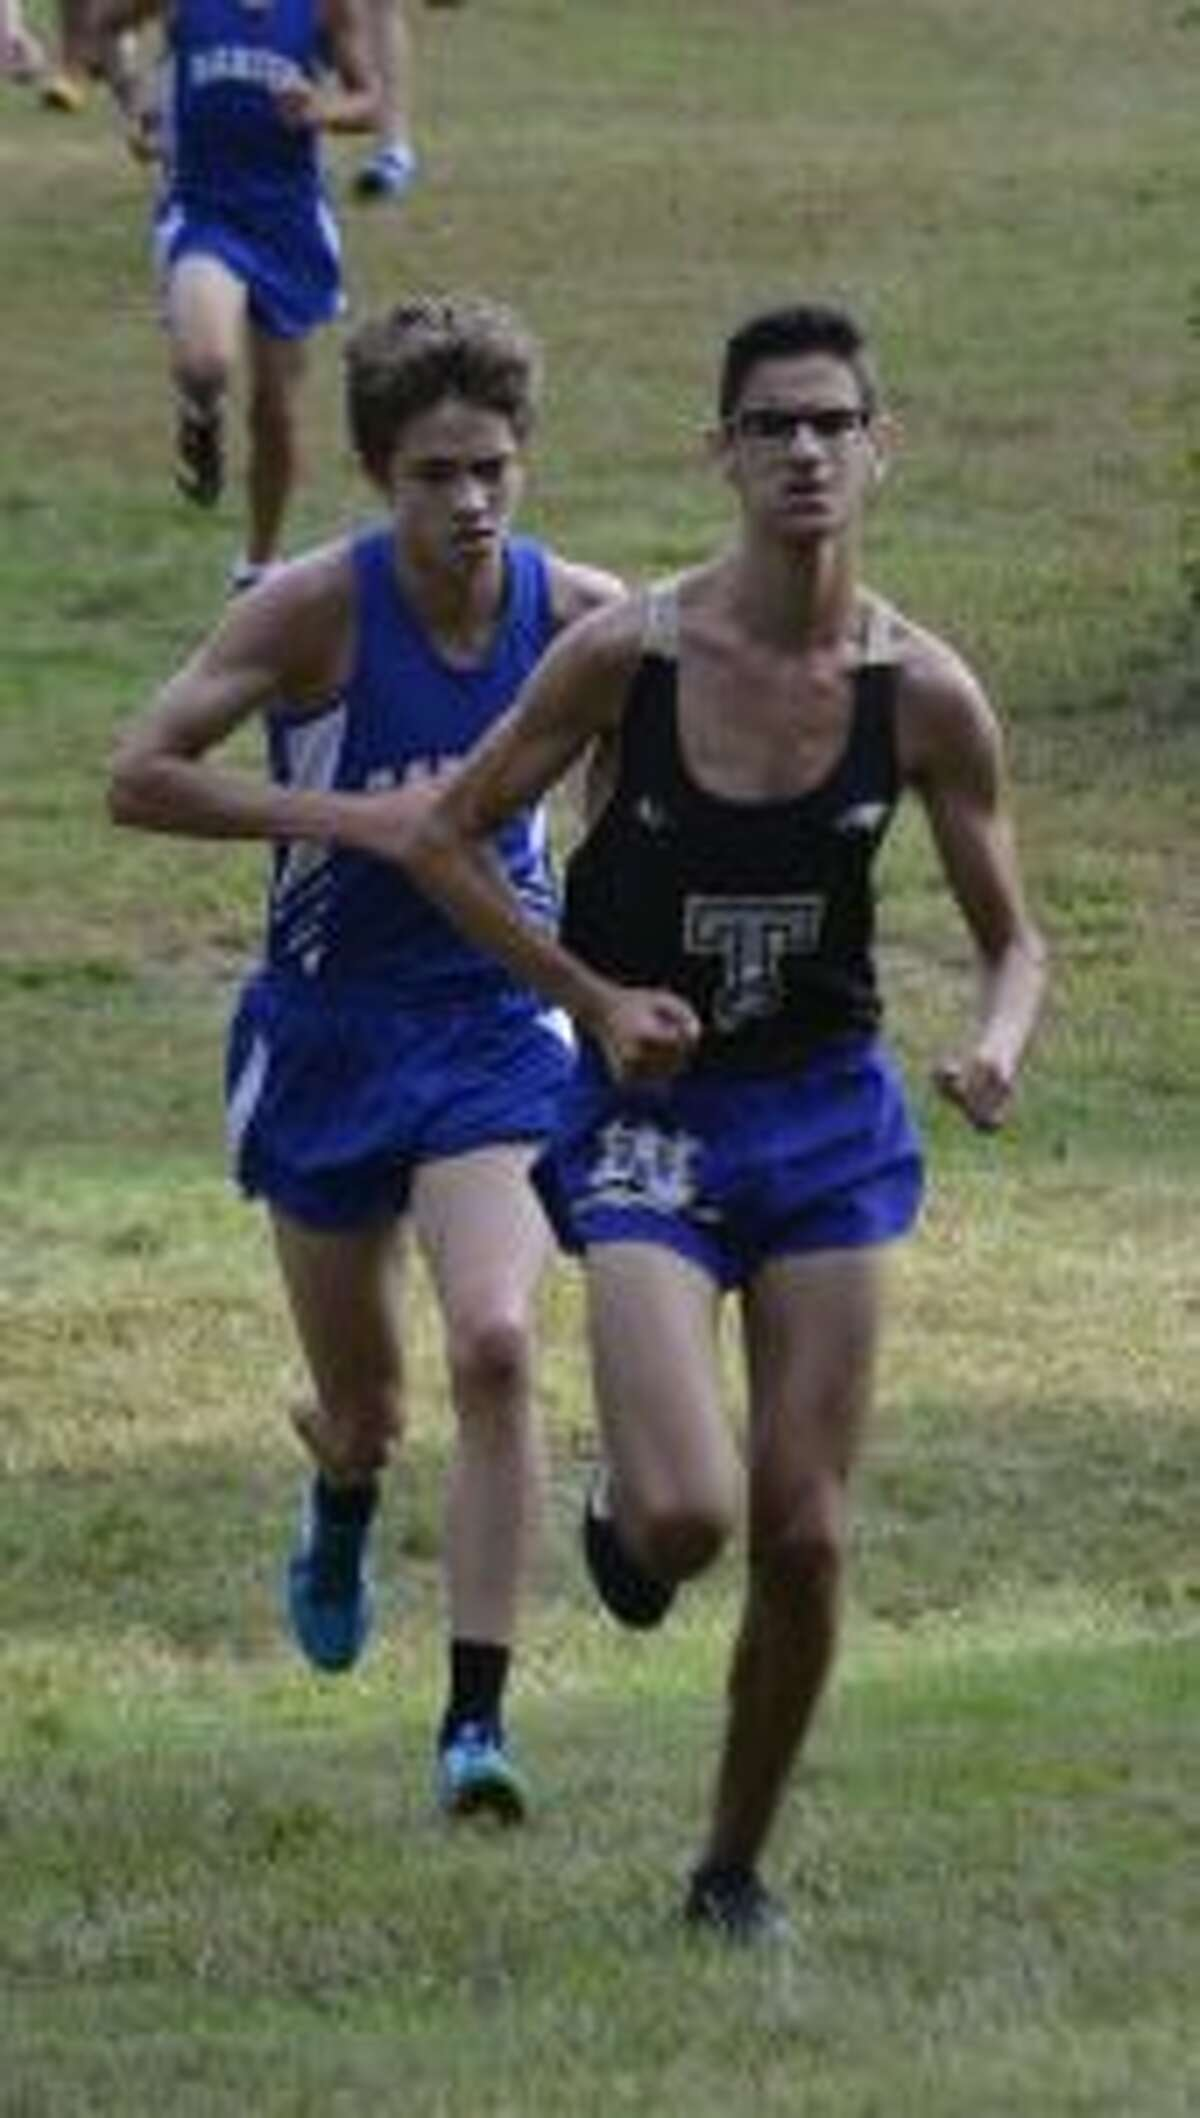 Chris Lepore placed first overall in the quad-meet at Greenwich.